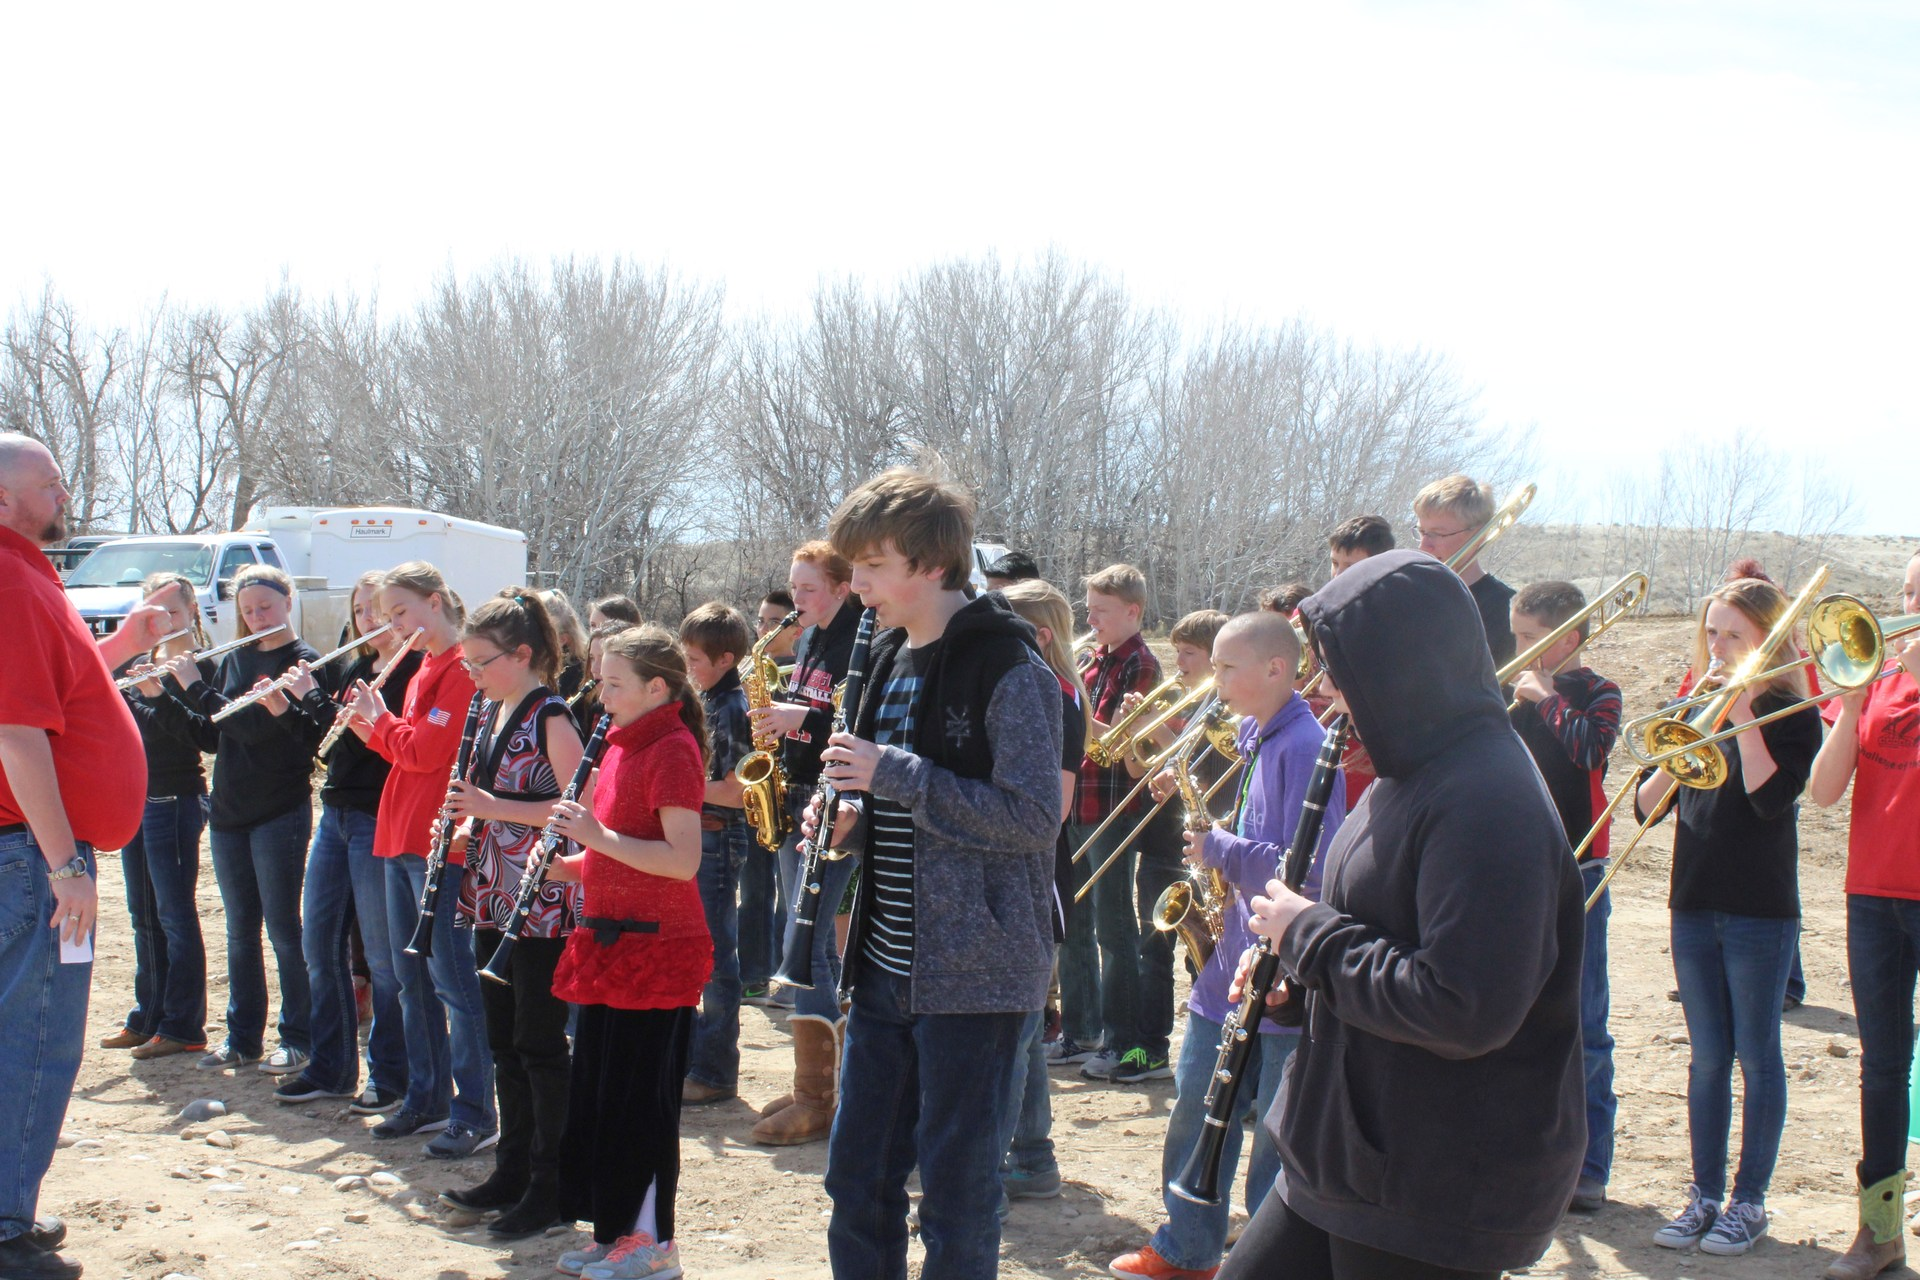 Band playing at groundbreaking ceremony